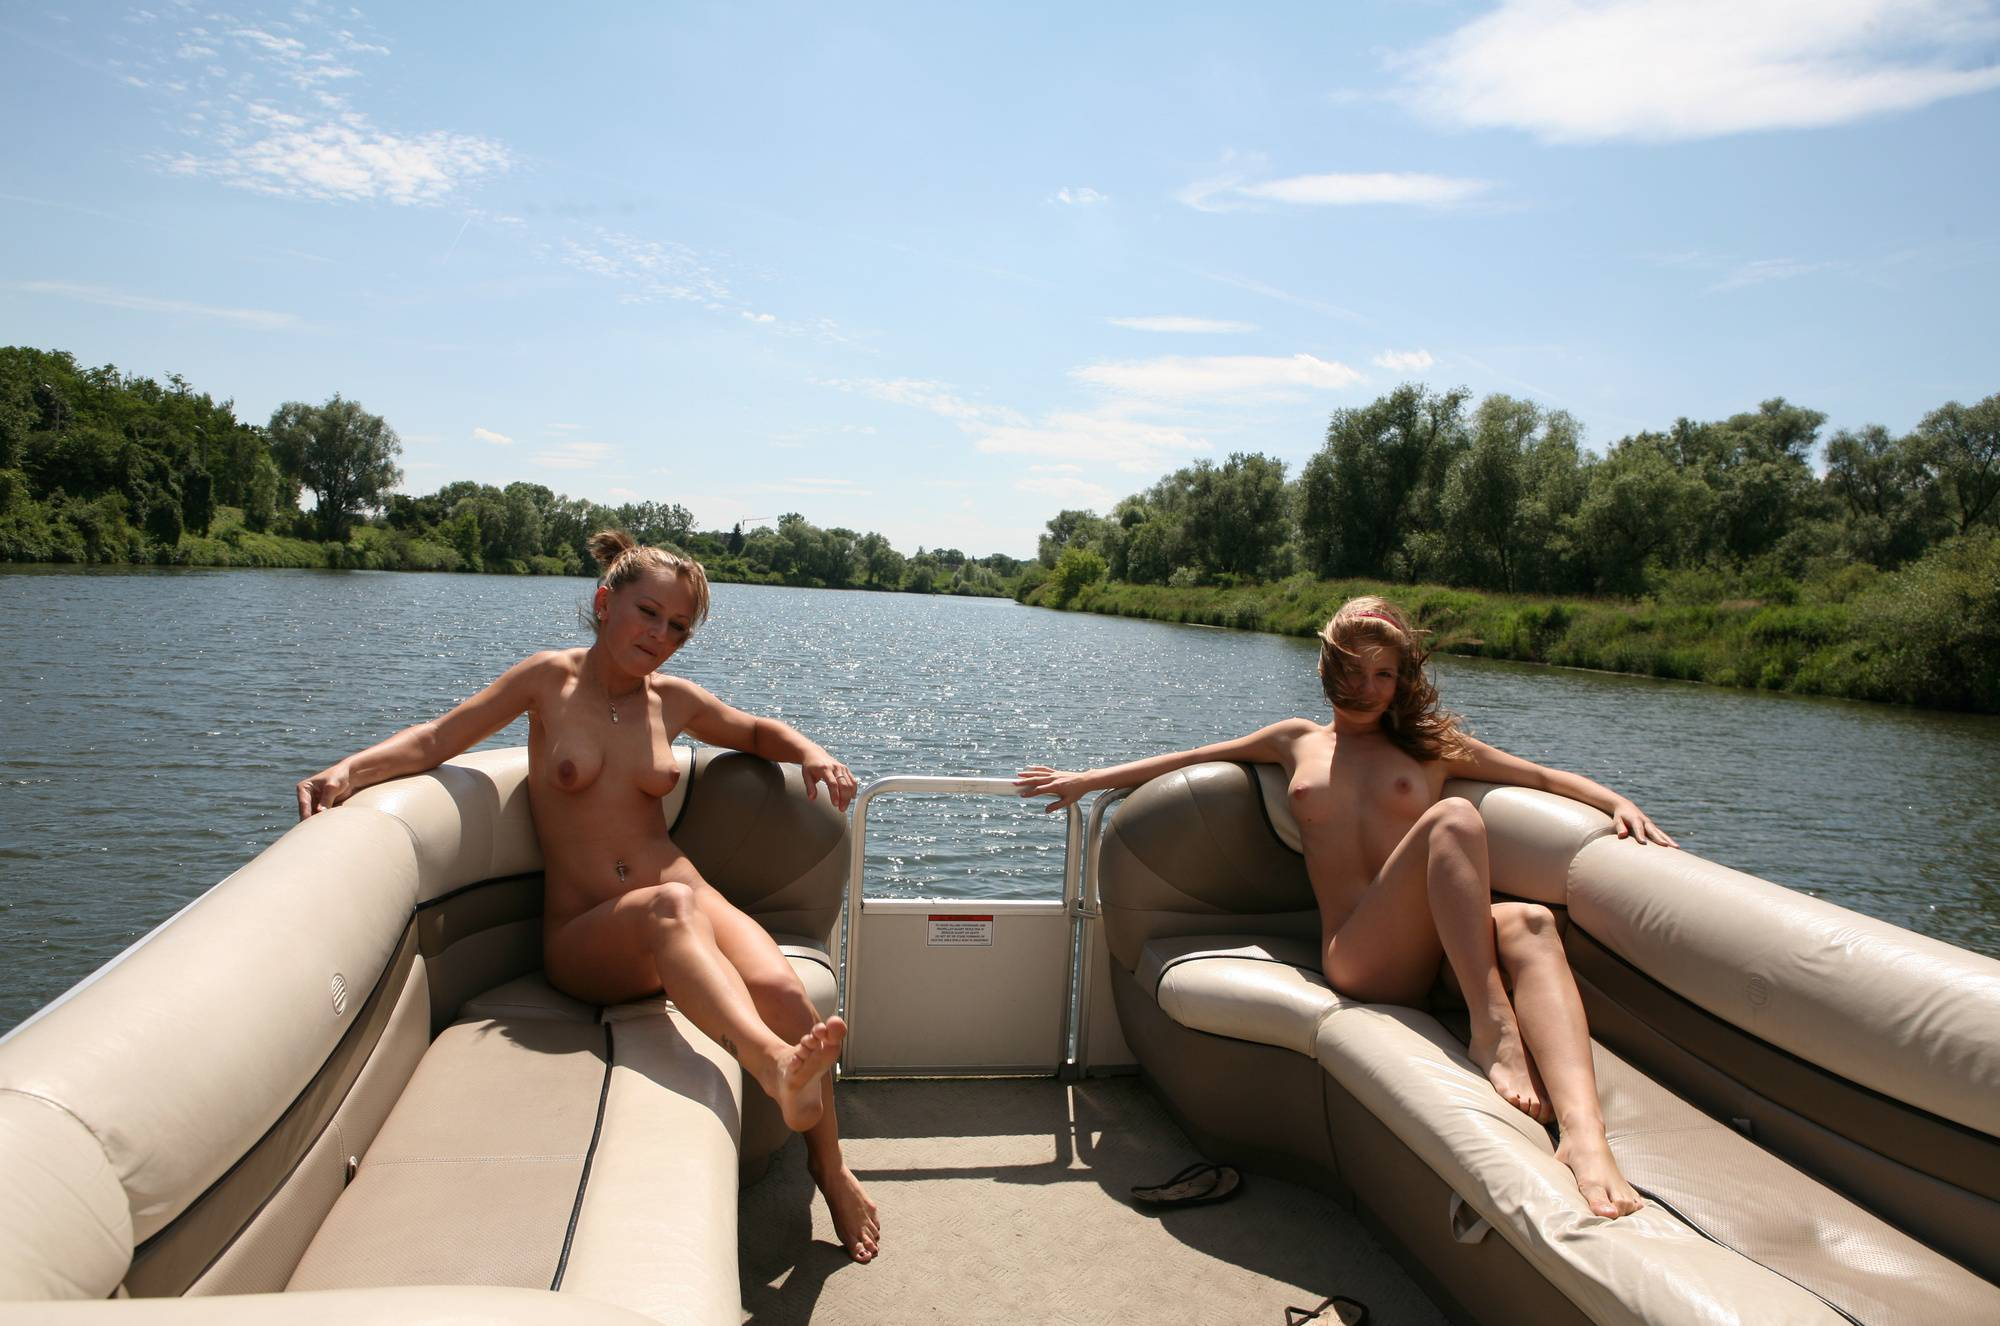 Pure Nudism Pics Relaxing On The Boat - 1